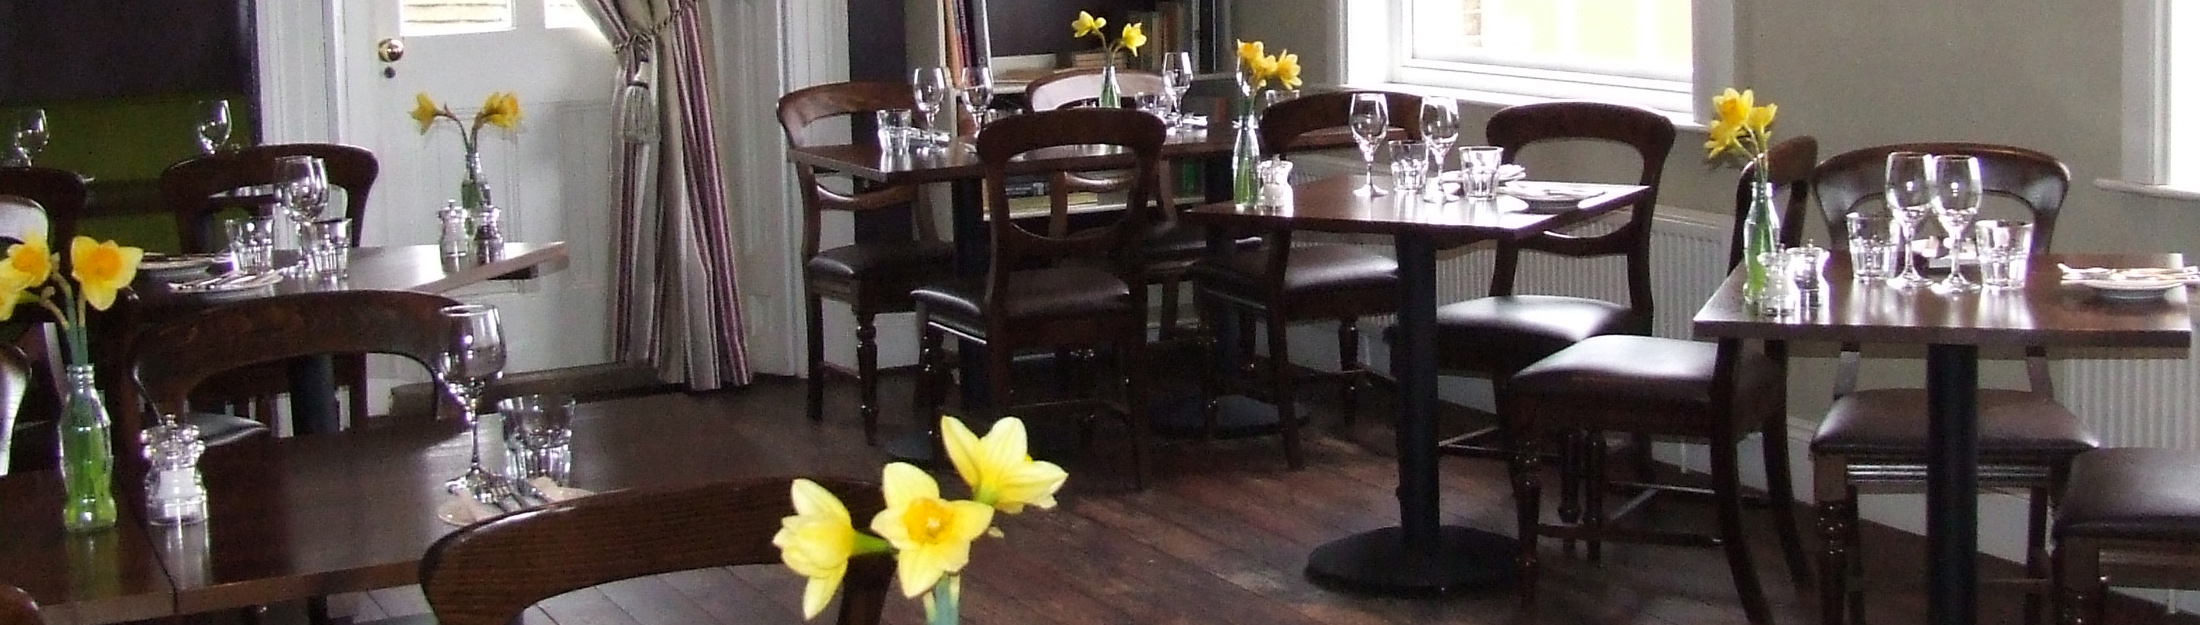 Hotel accommodation in king 39 s lynn boutique hotel for Furniture kings lynn